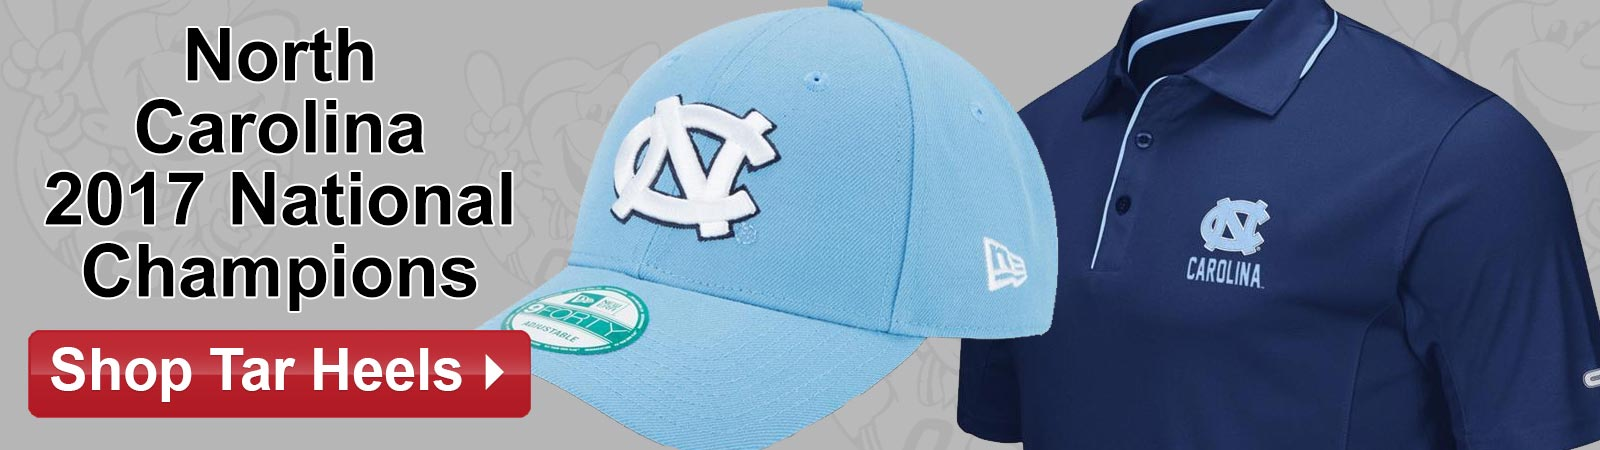 Shop North Carolina Tar Heels 2017 National Championship Gear